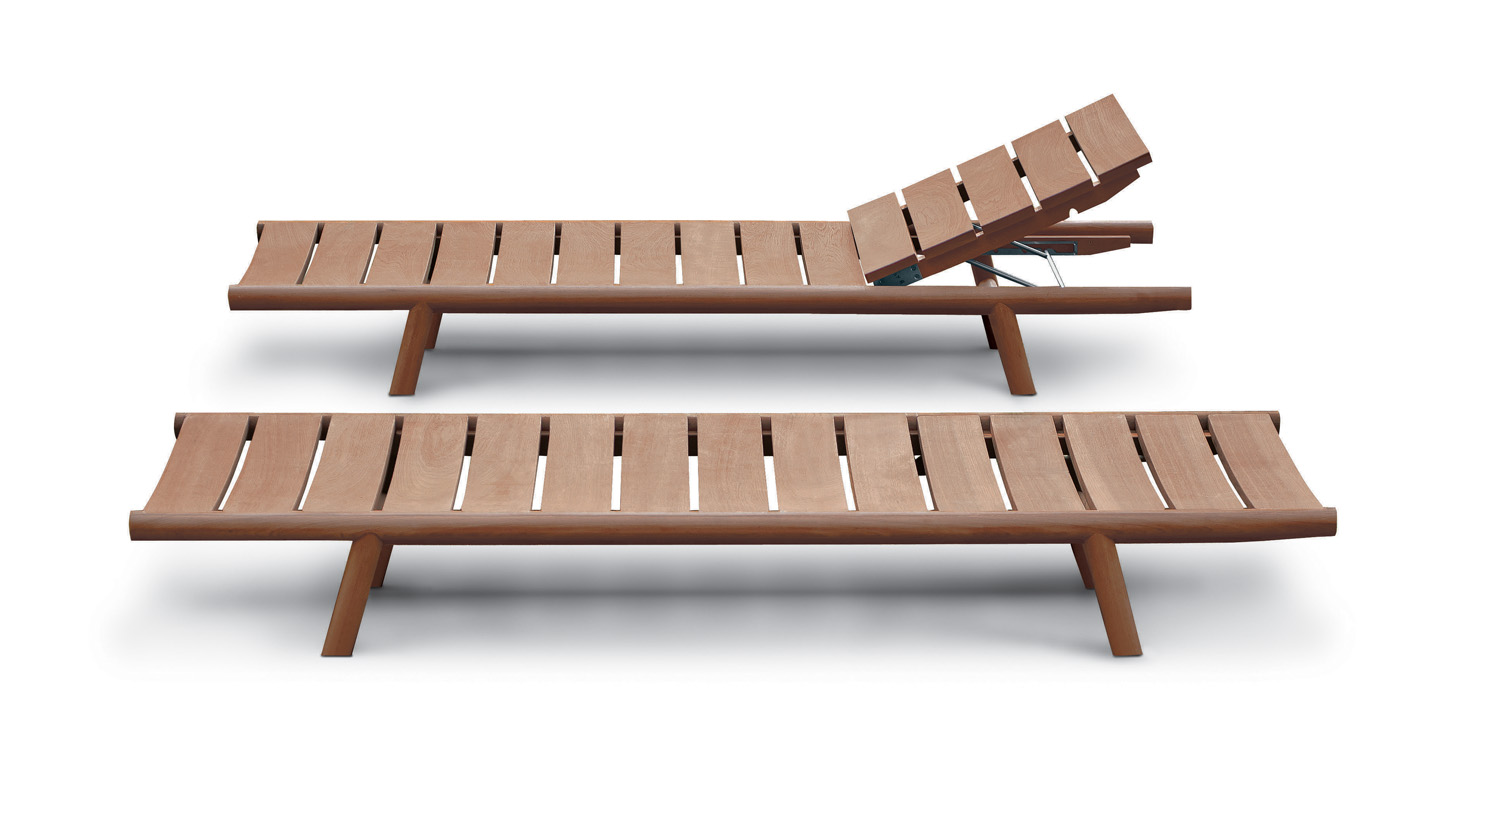 Relax with Roda's sleek and modern Orson slatted teak sun loungers from Contempo www.contempocollection.com.au